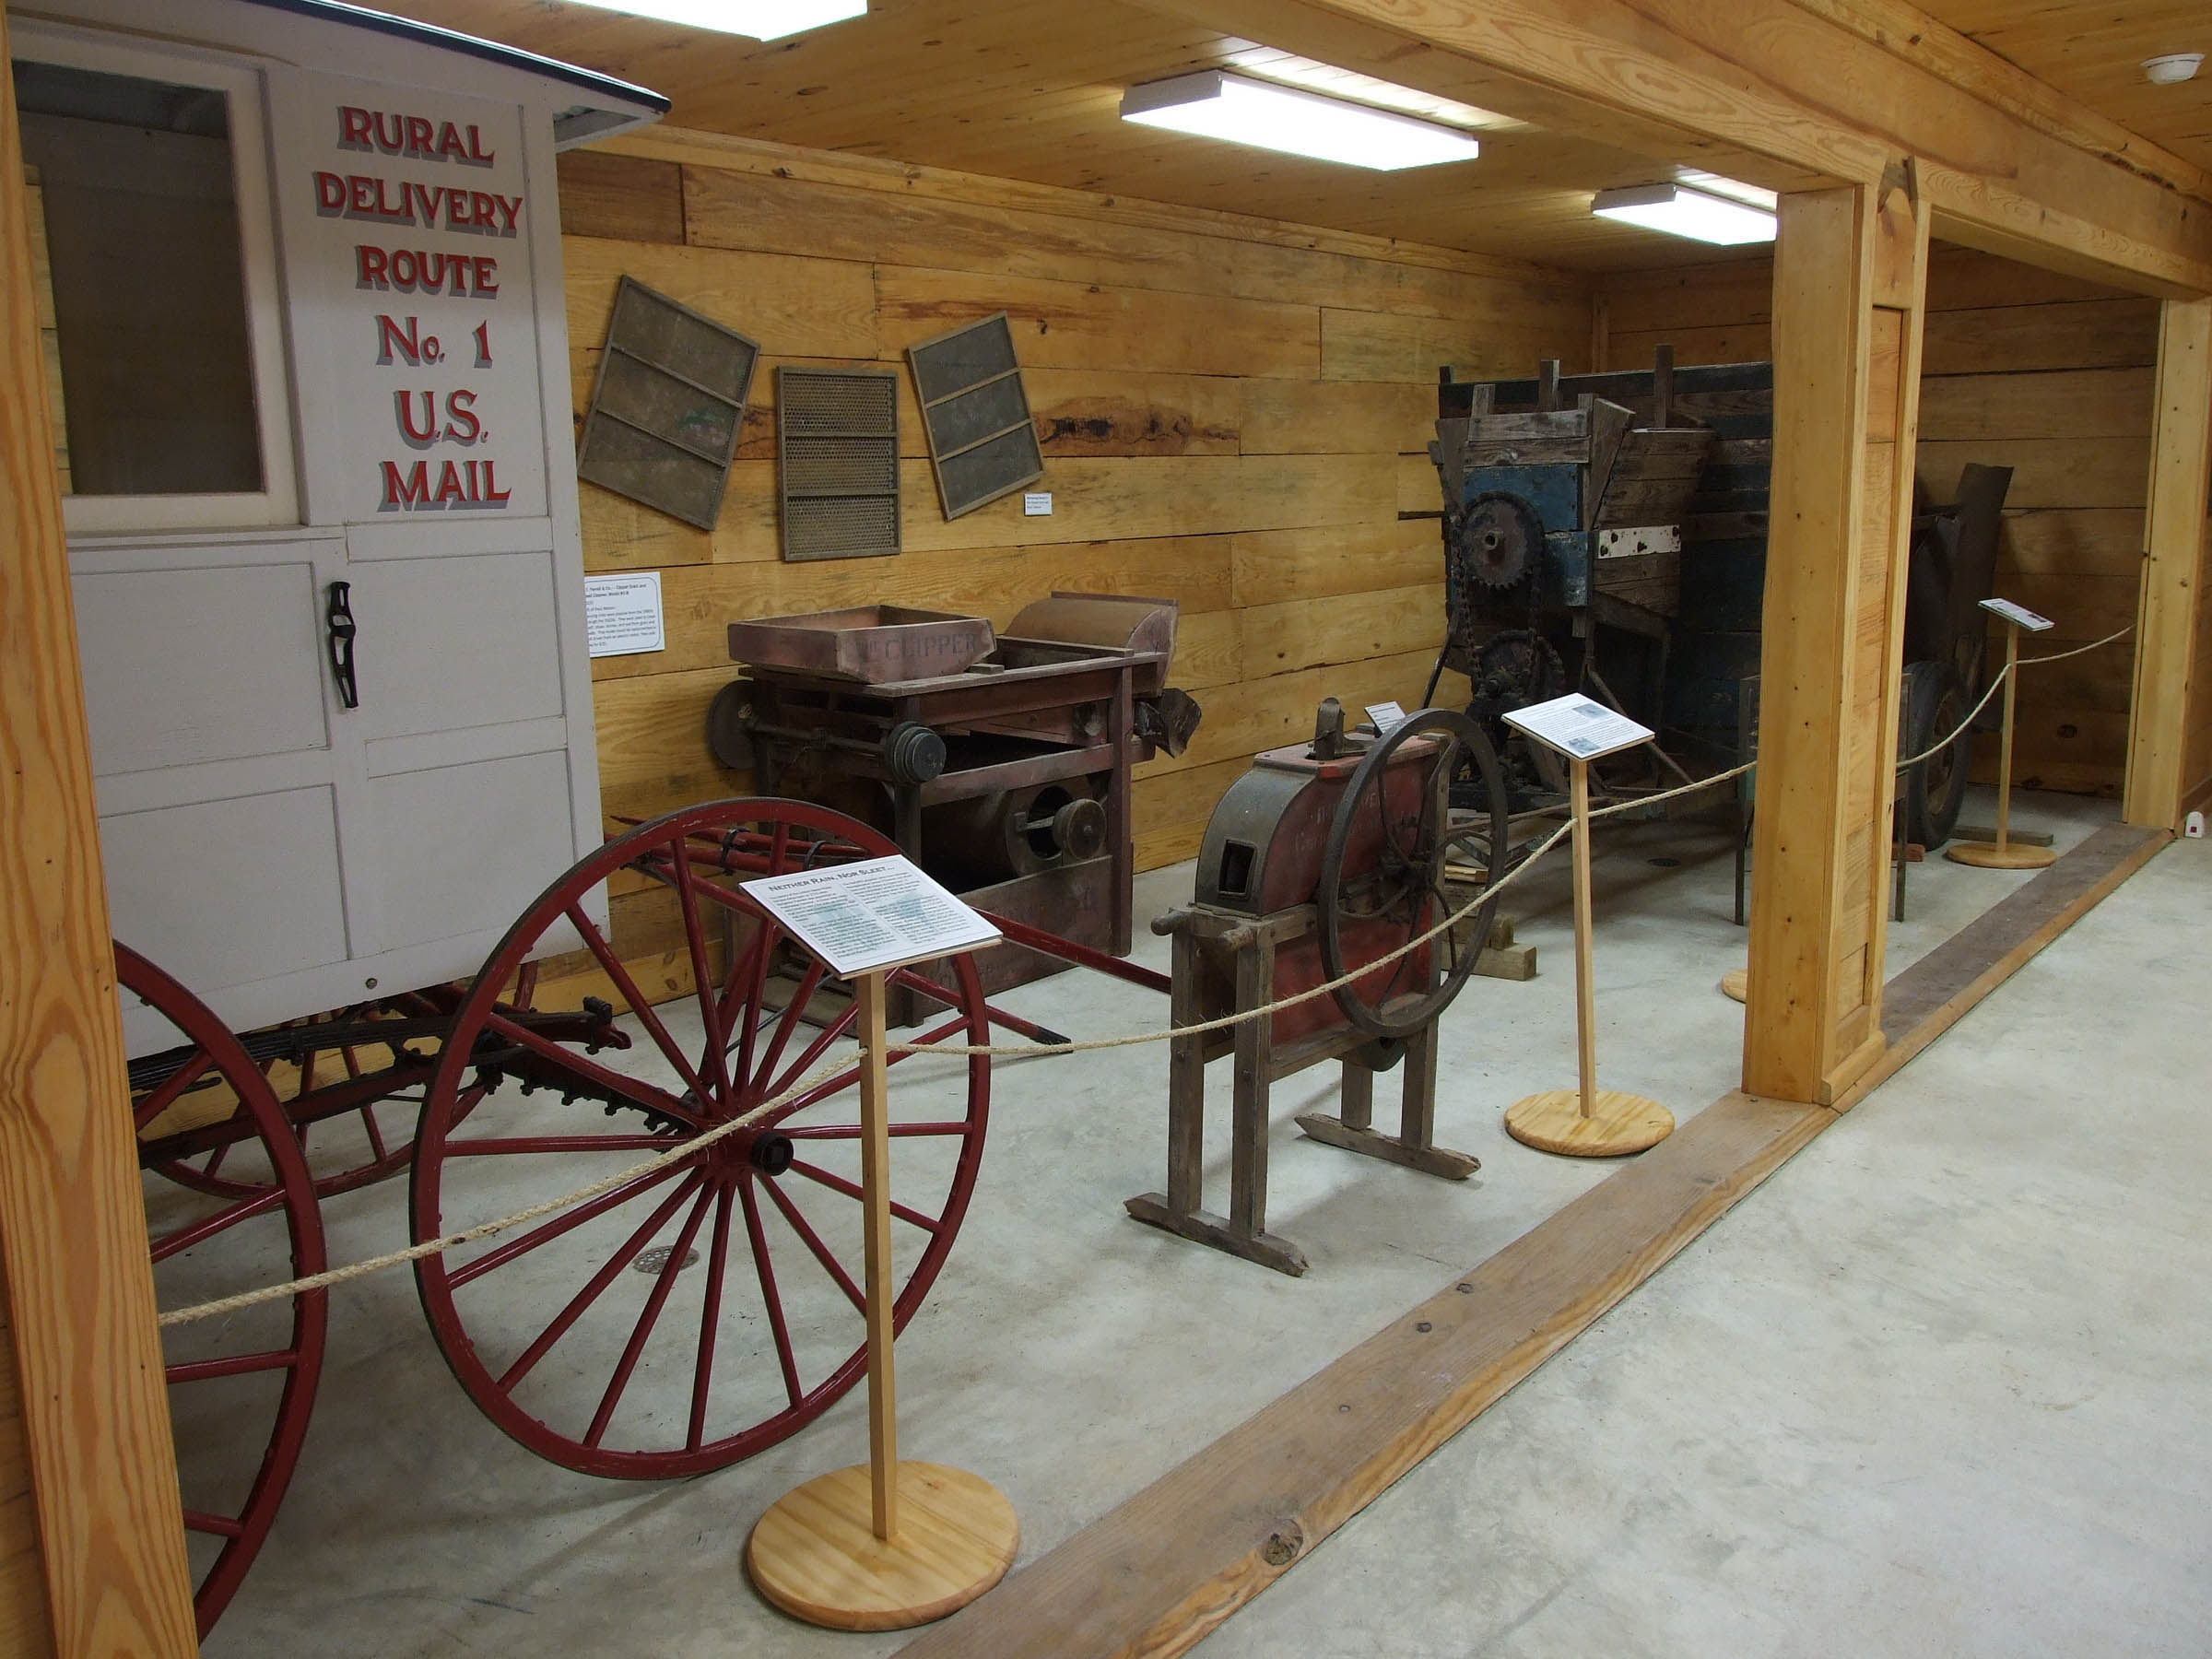 Farm Equipment Exhibit